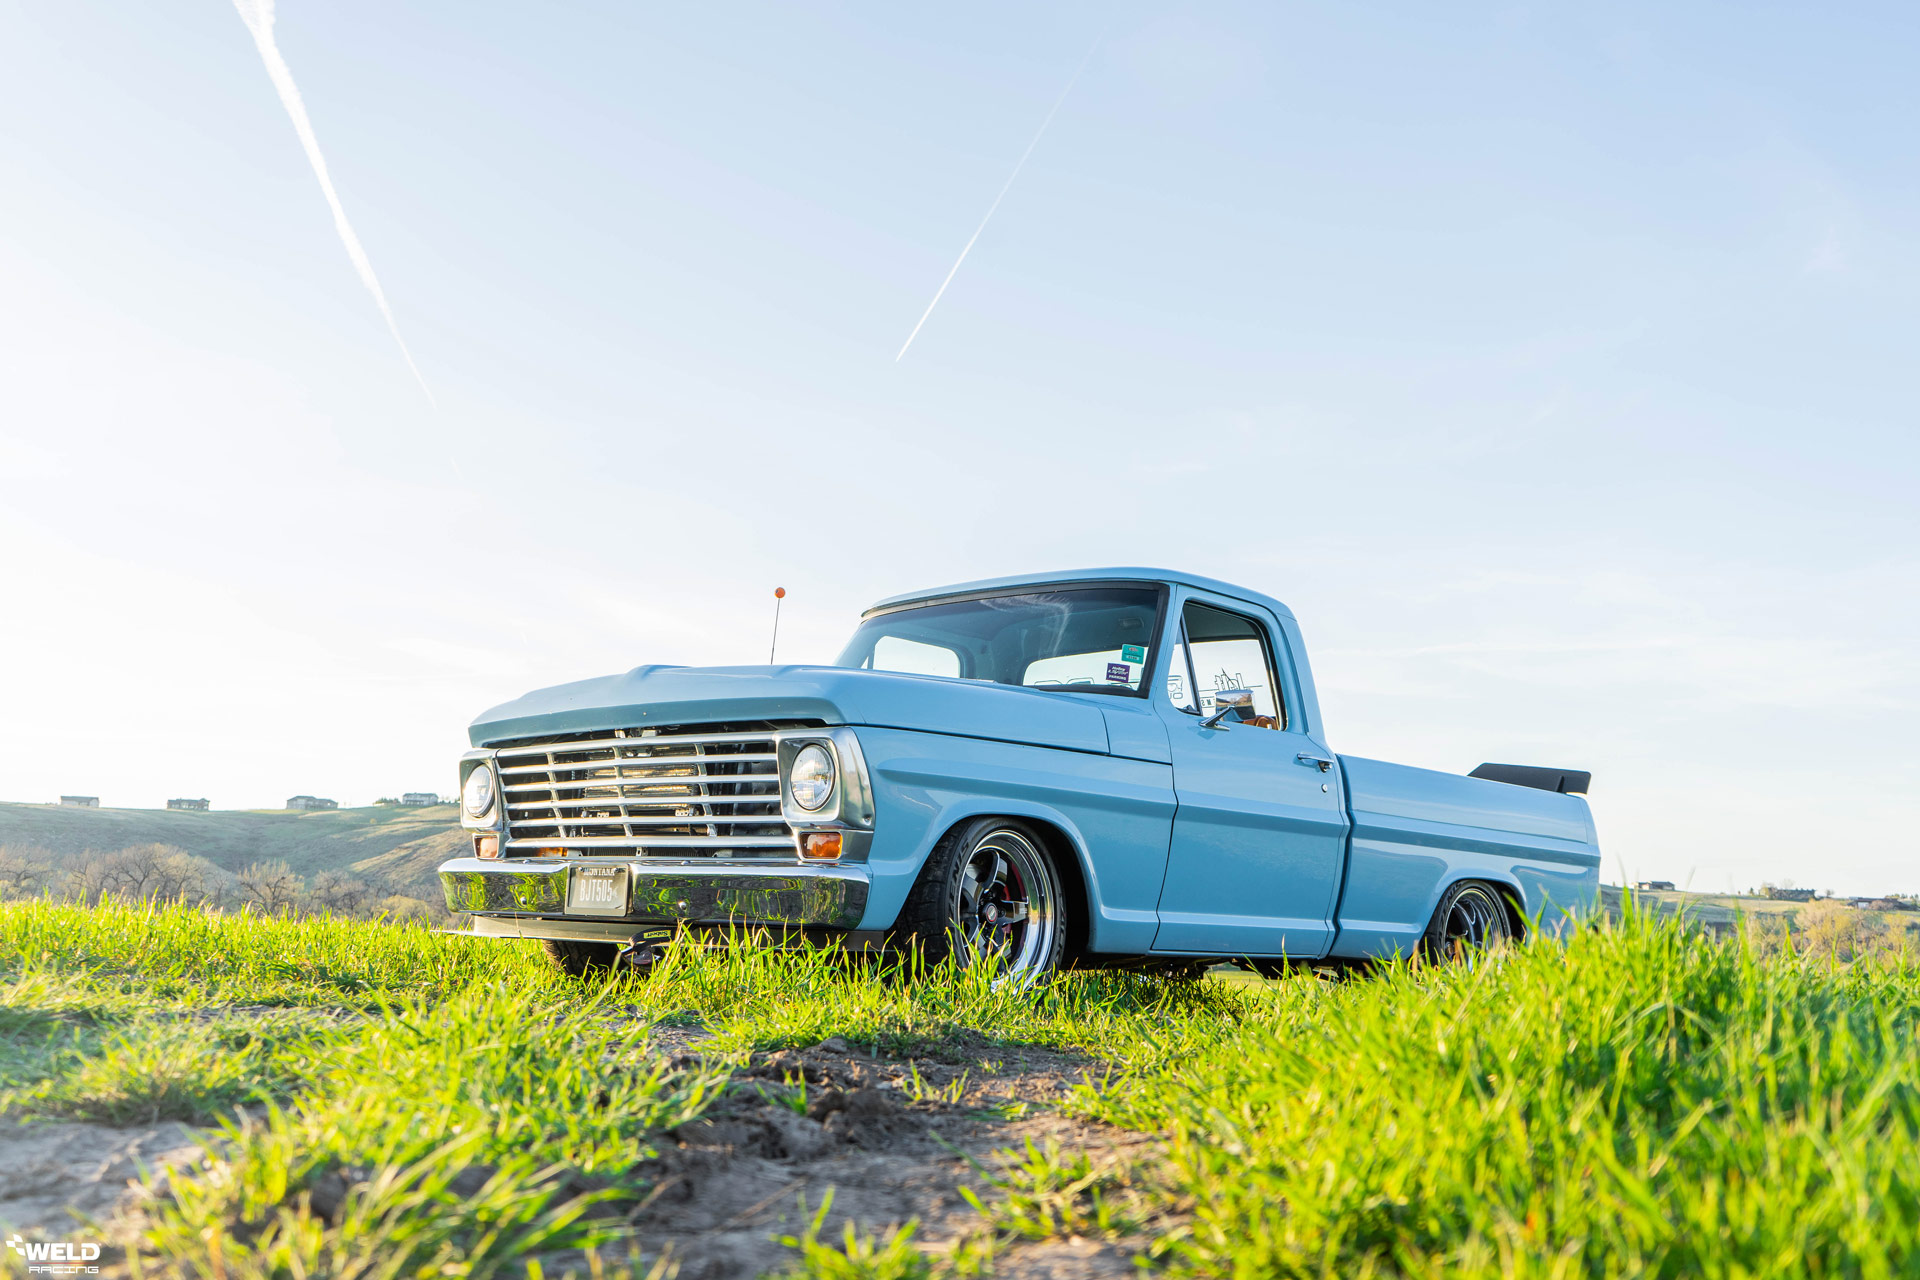 Powder Blue 1969 Ford F100 Pick Up Truck - WELD S71 Forged Wheels